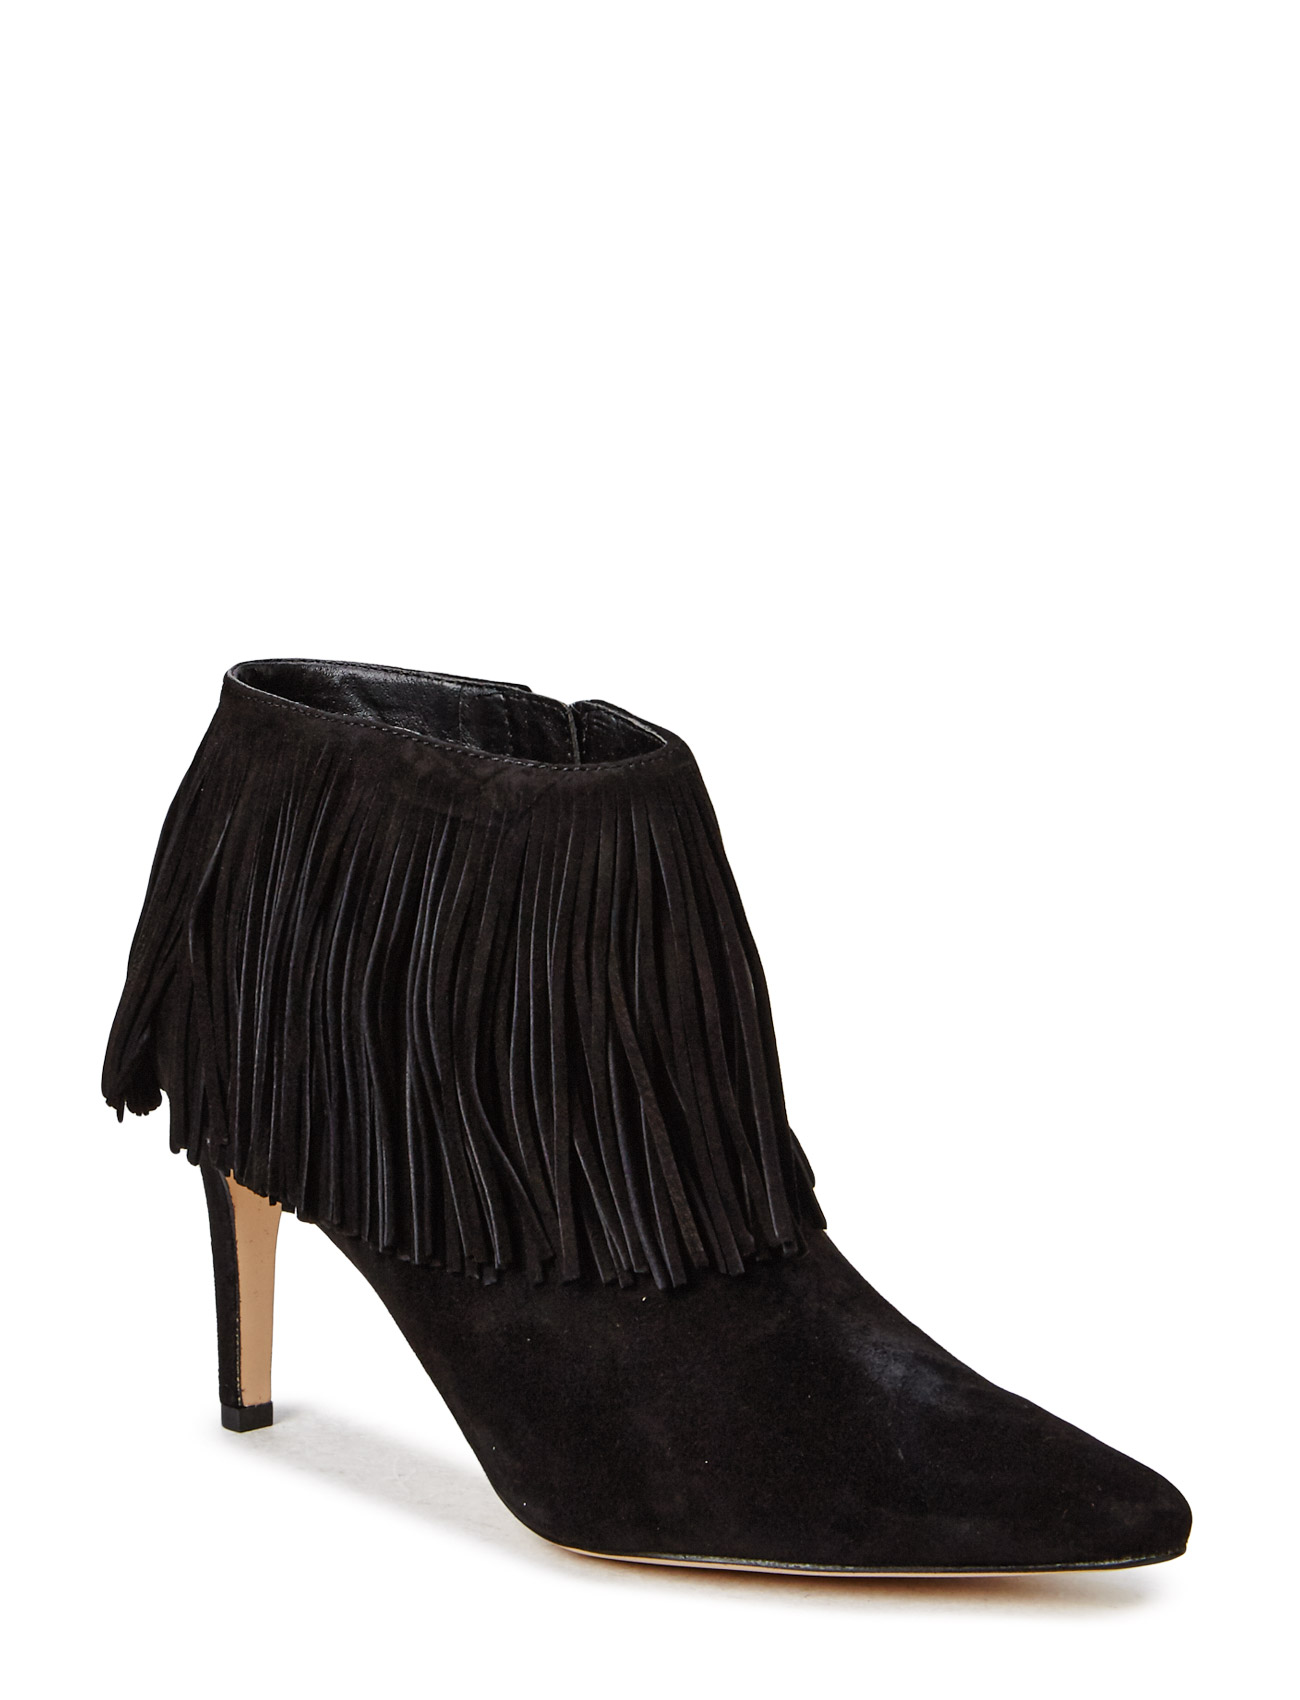 Kandice Sam Edelman Stiletter til Damer i Black Kid Suede